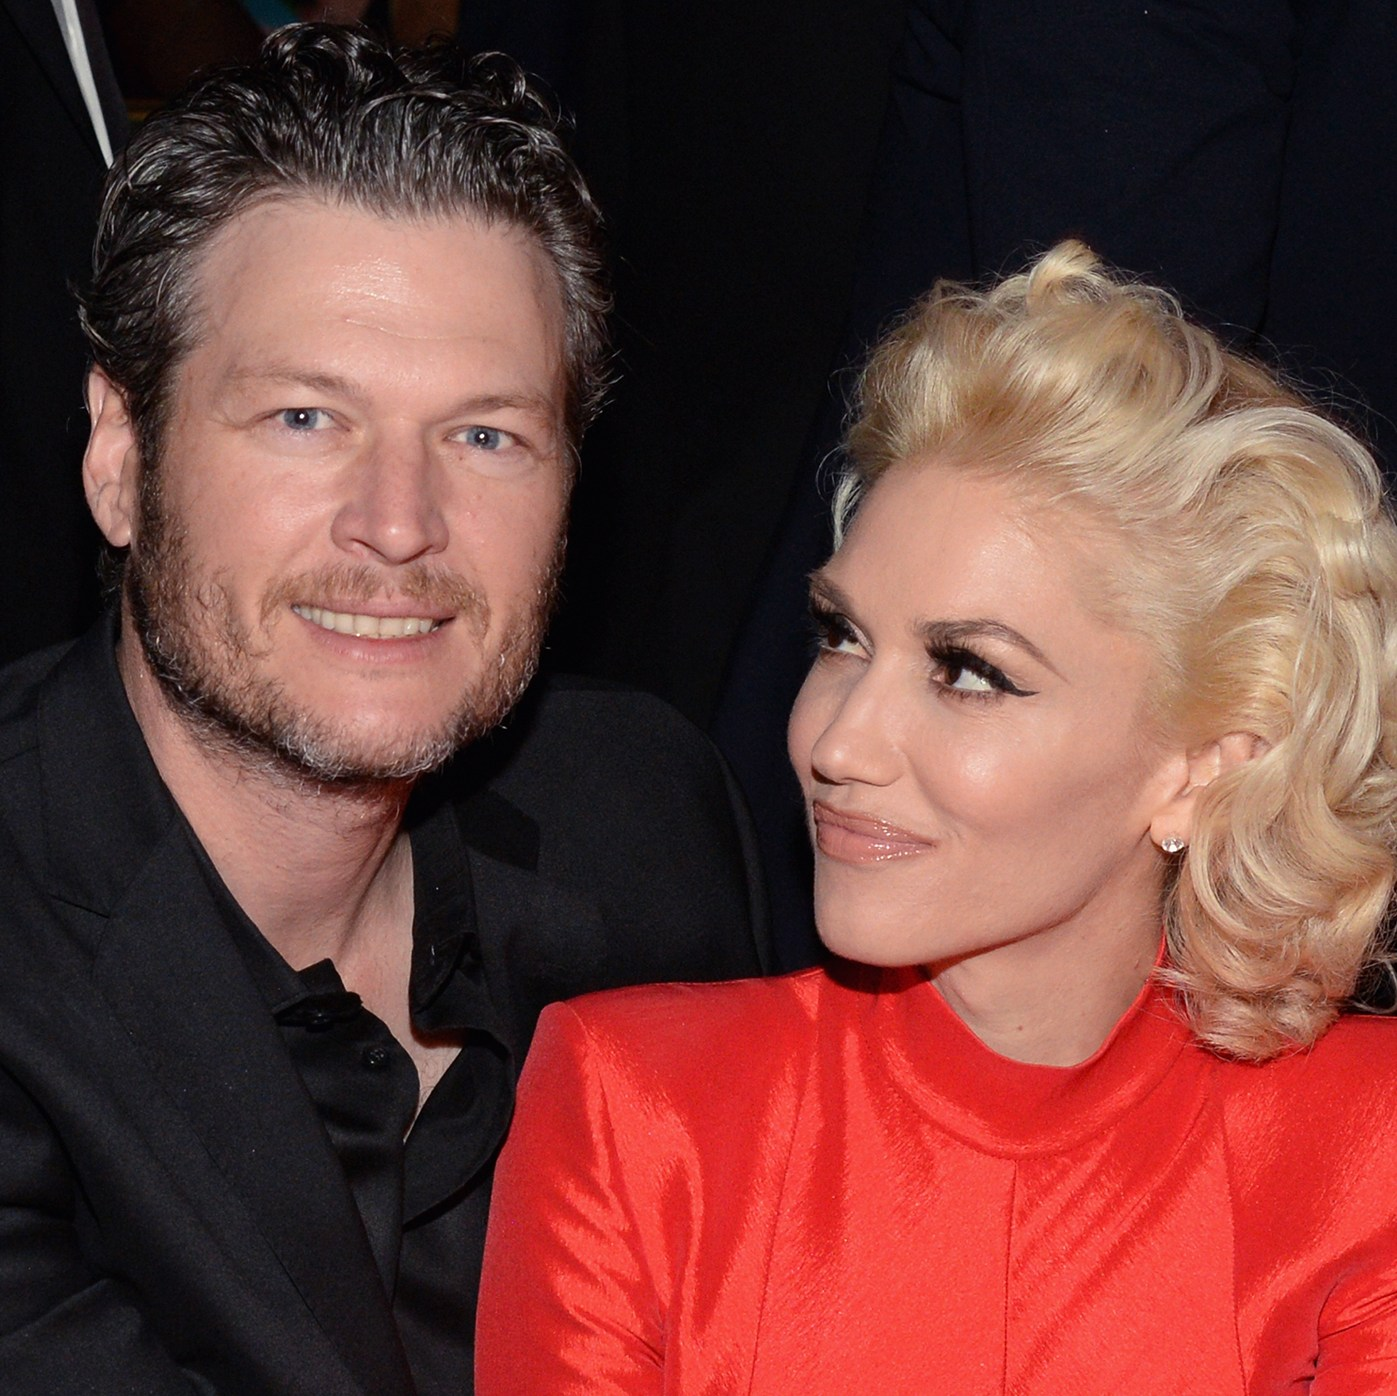 Blake Shelton, Gwen Stefani Will Announce Their Engagement Soon